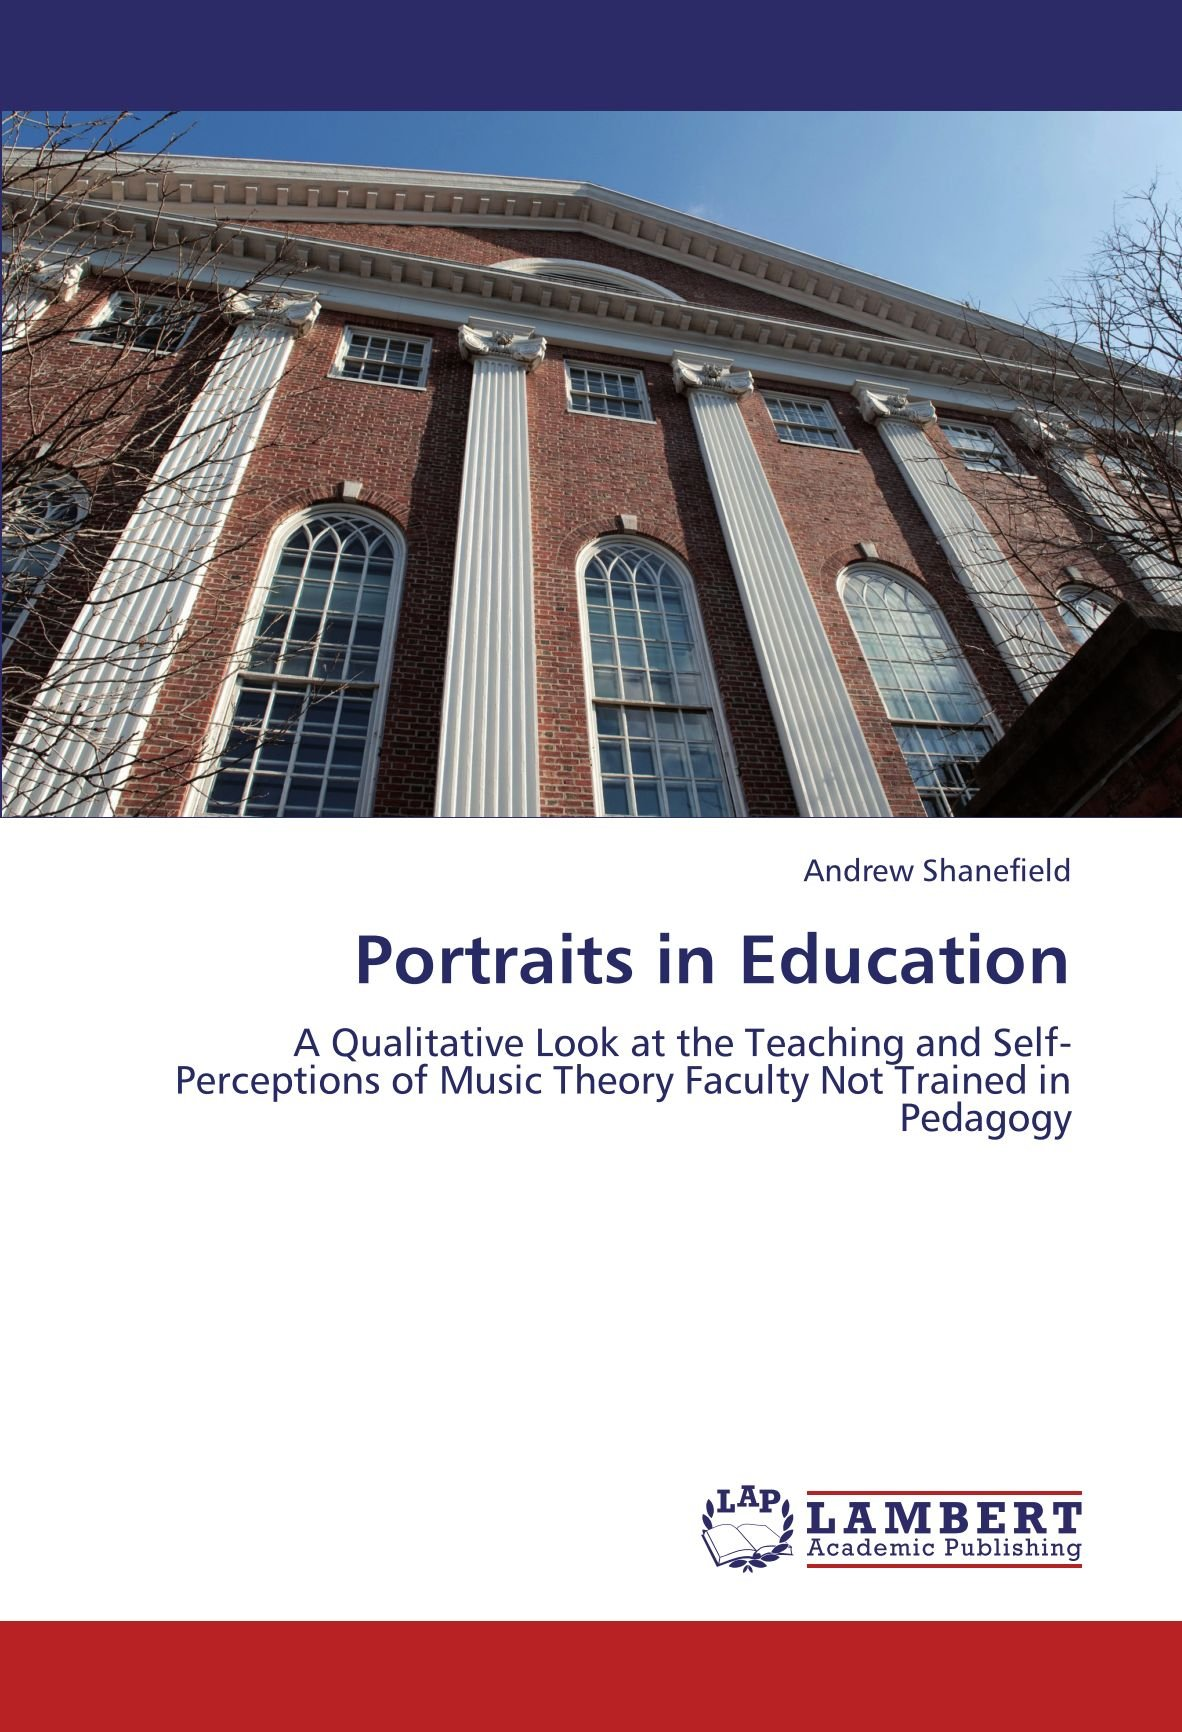 Download Portraits in Education: A Qualitative Look at the Teaching and Self-Perceptions of Music Theory Faculty Not Trained in Pedagogy pdf